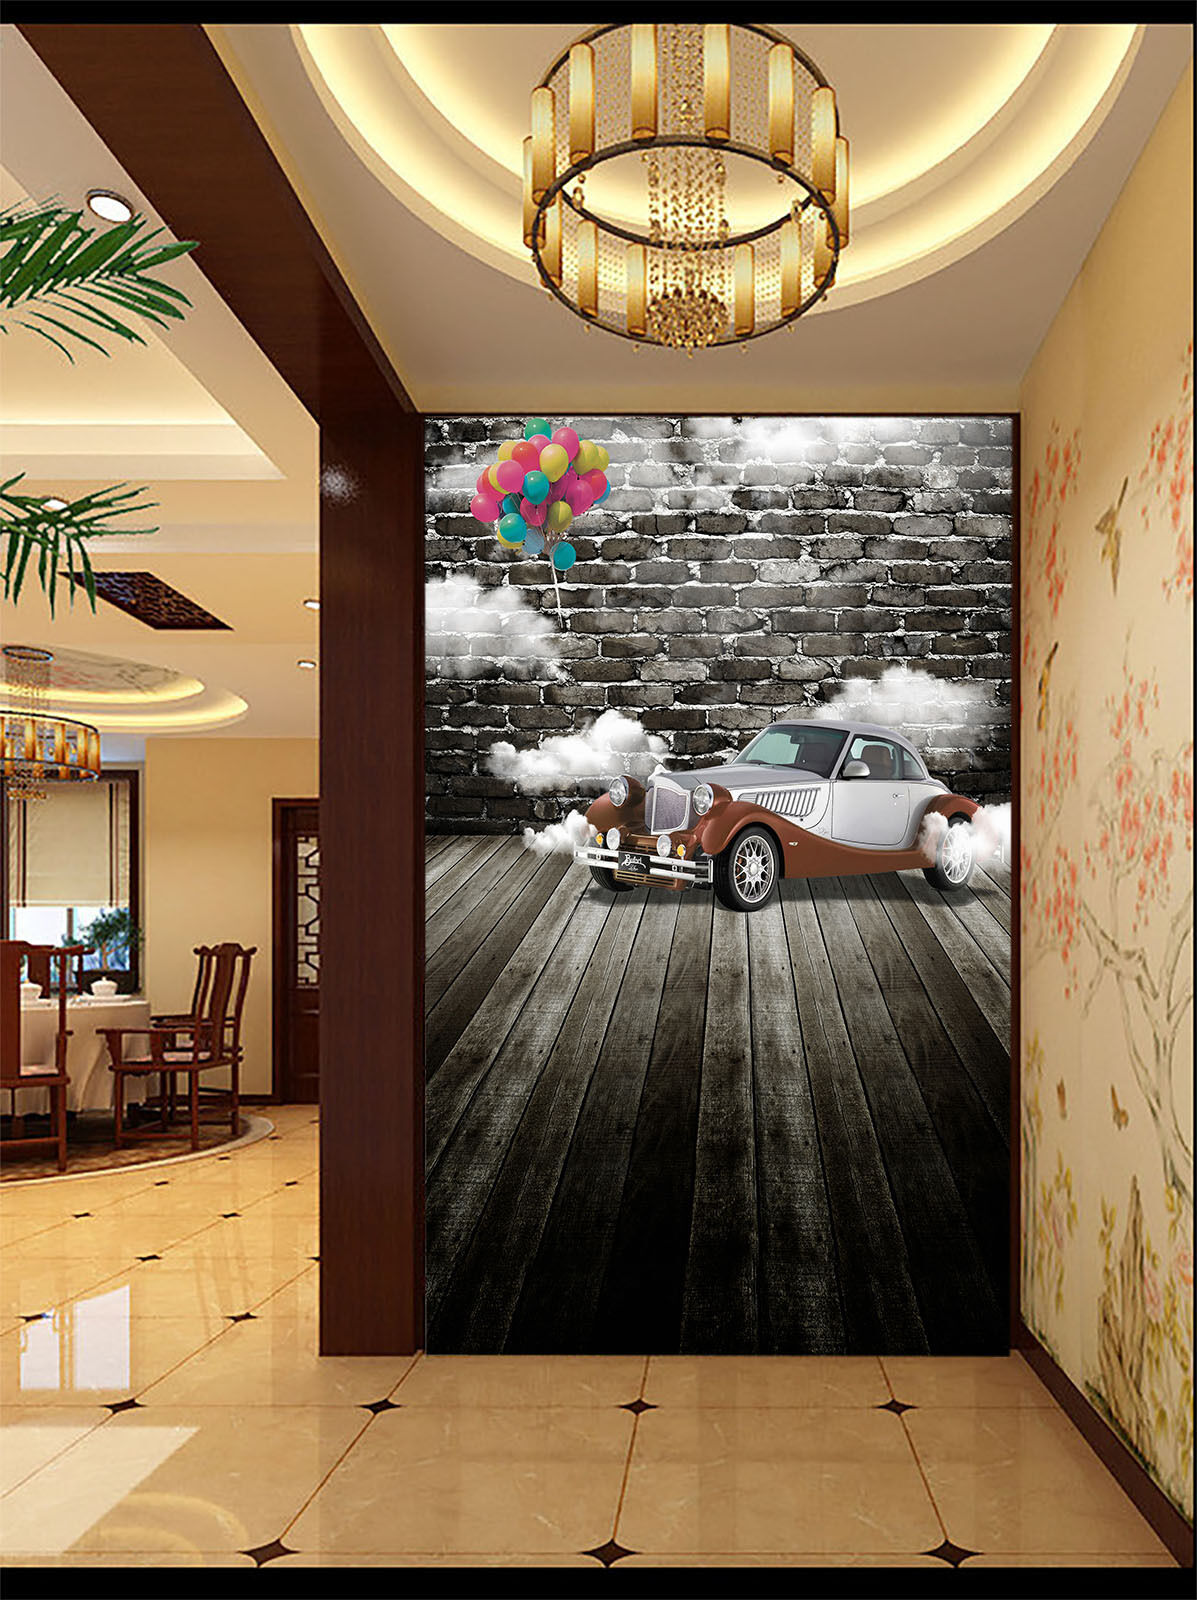 3D Car And Balloons 415 Wall Paper Wall Print Decal Wall Deco Wall Indoor Murals